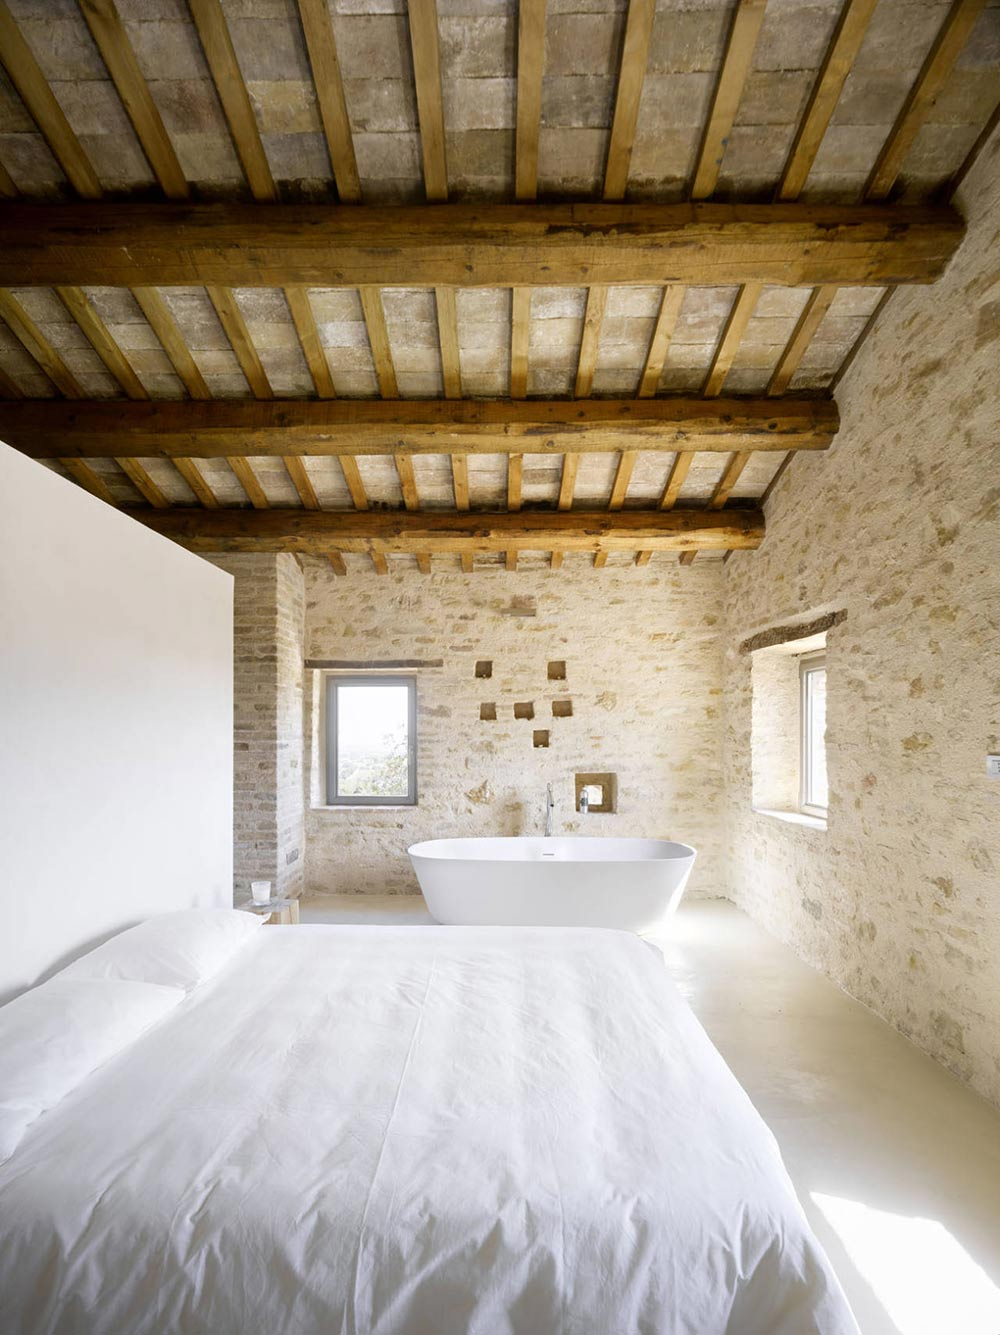 Bedroom, Bathroom, Home Renovation In Treia, Italy by Wespi de Meuron